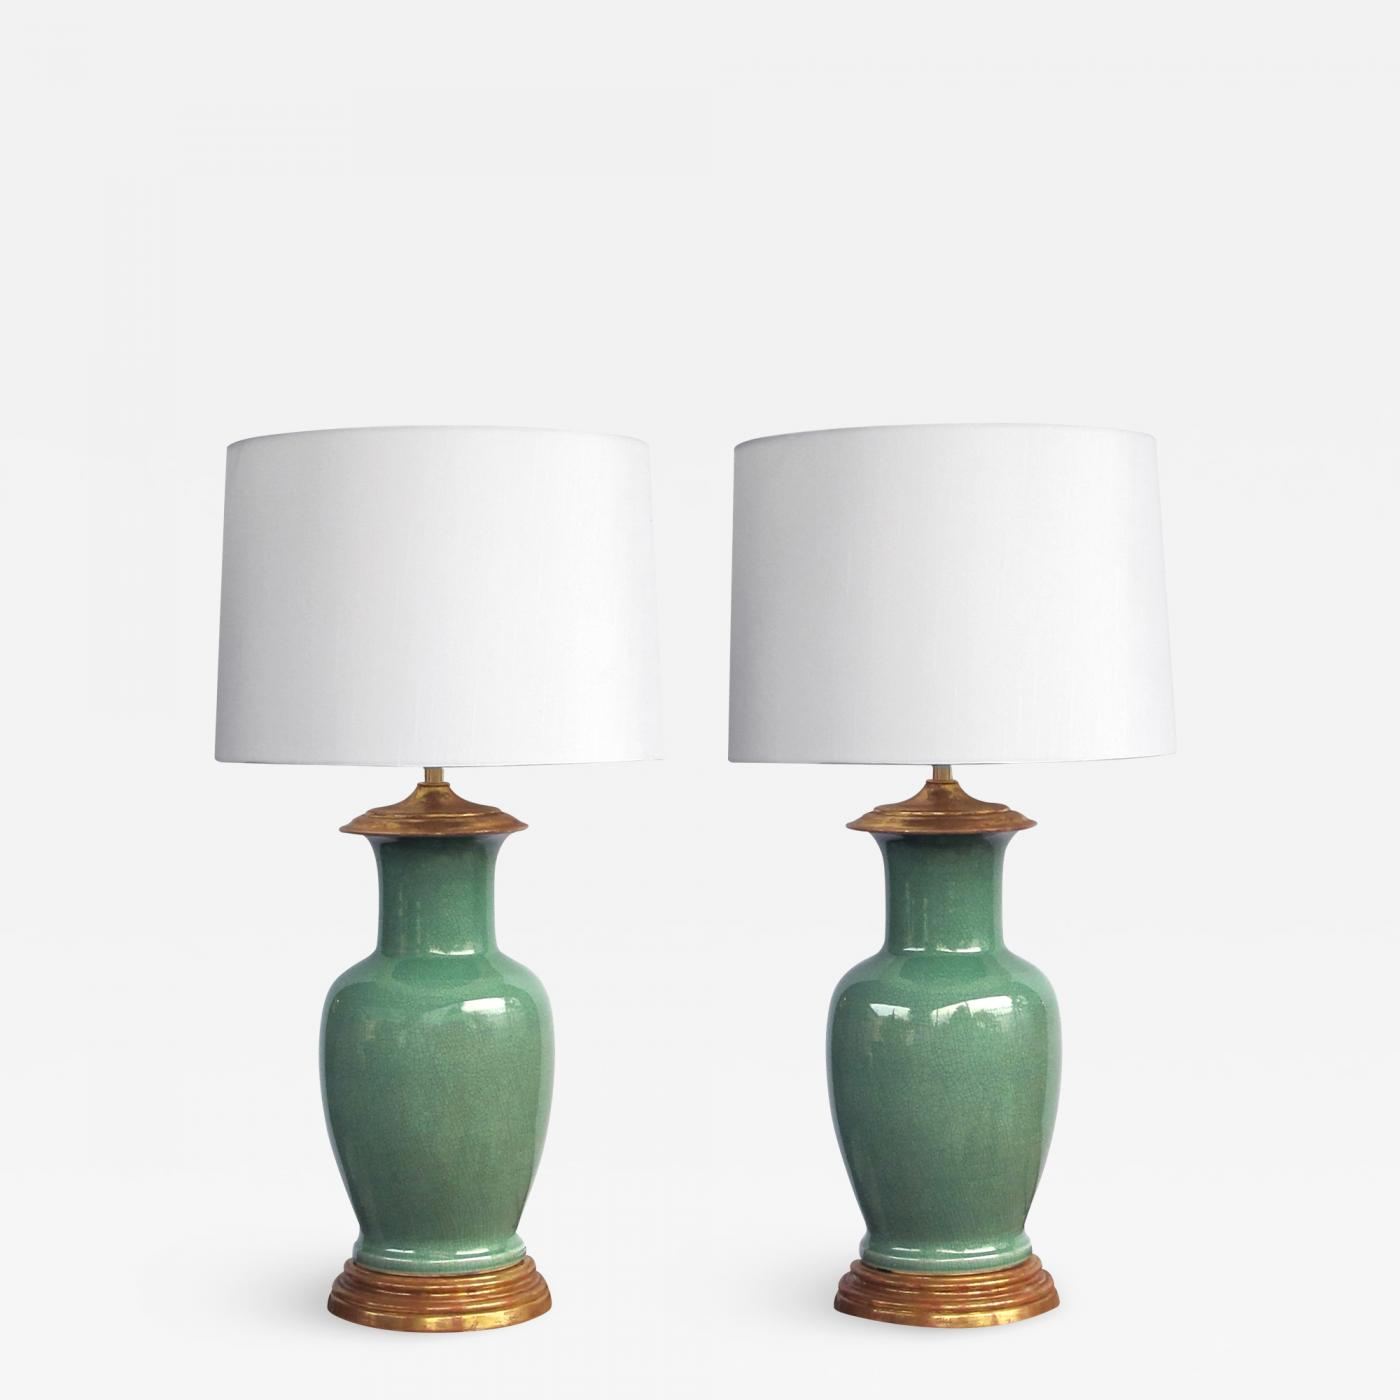 Good Quality Pair Of Vintage Celadon Crackle Glaze Lamps By Wildwood Lamp Co